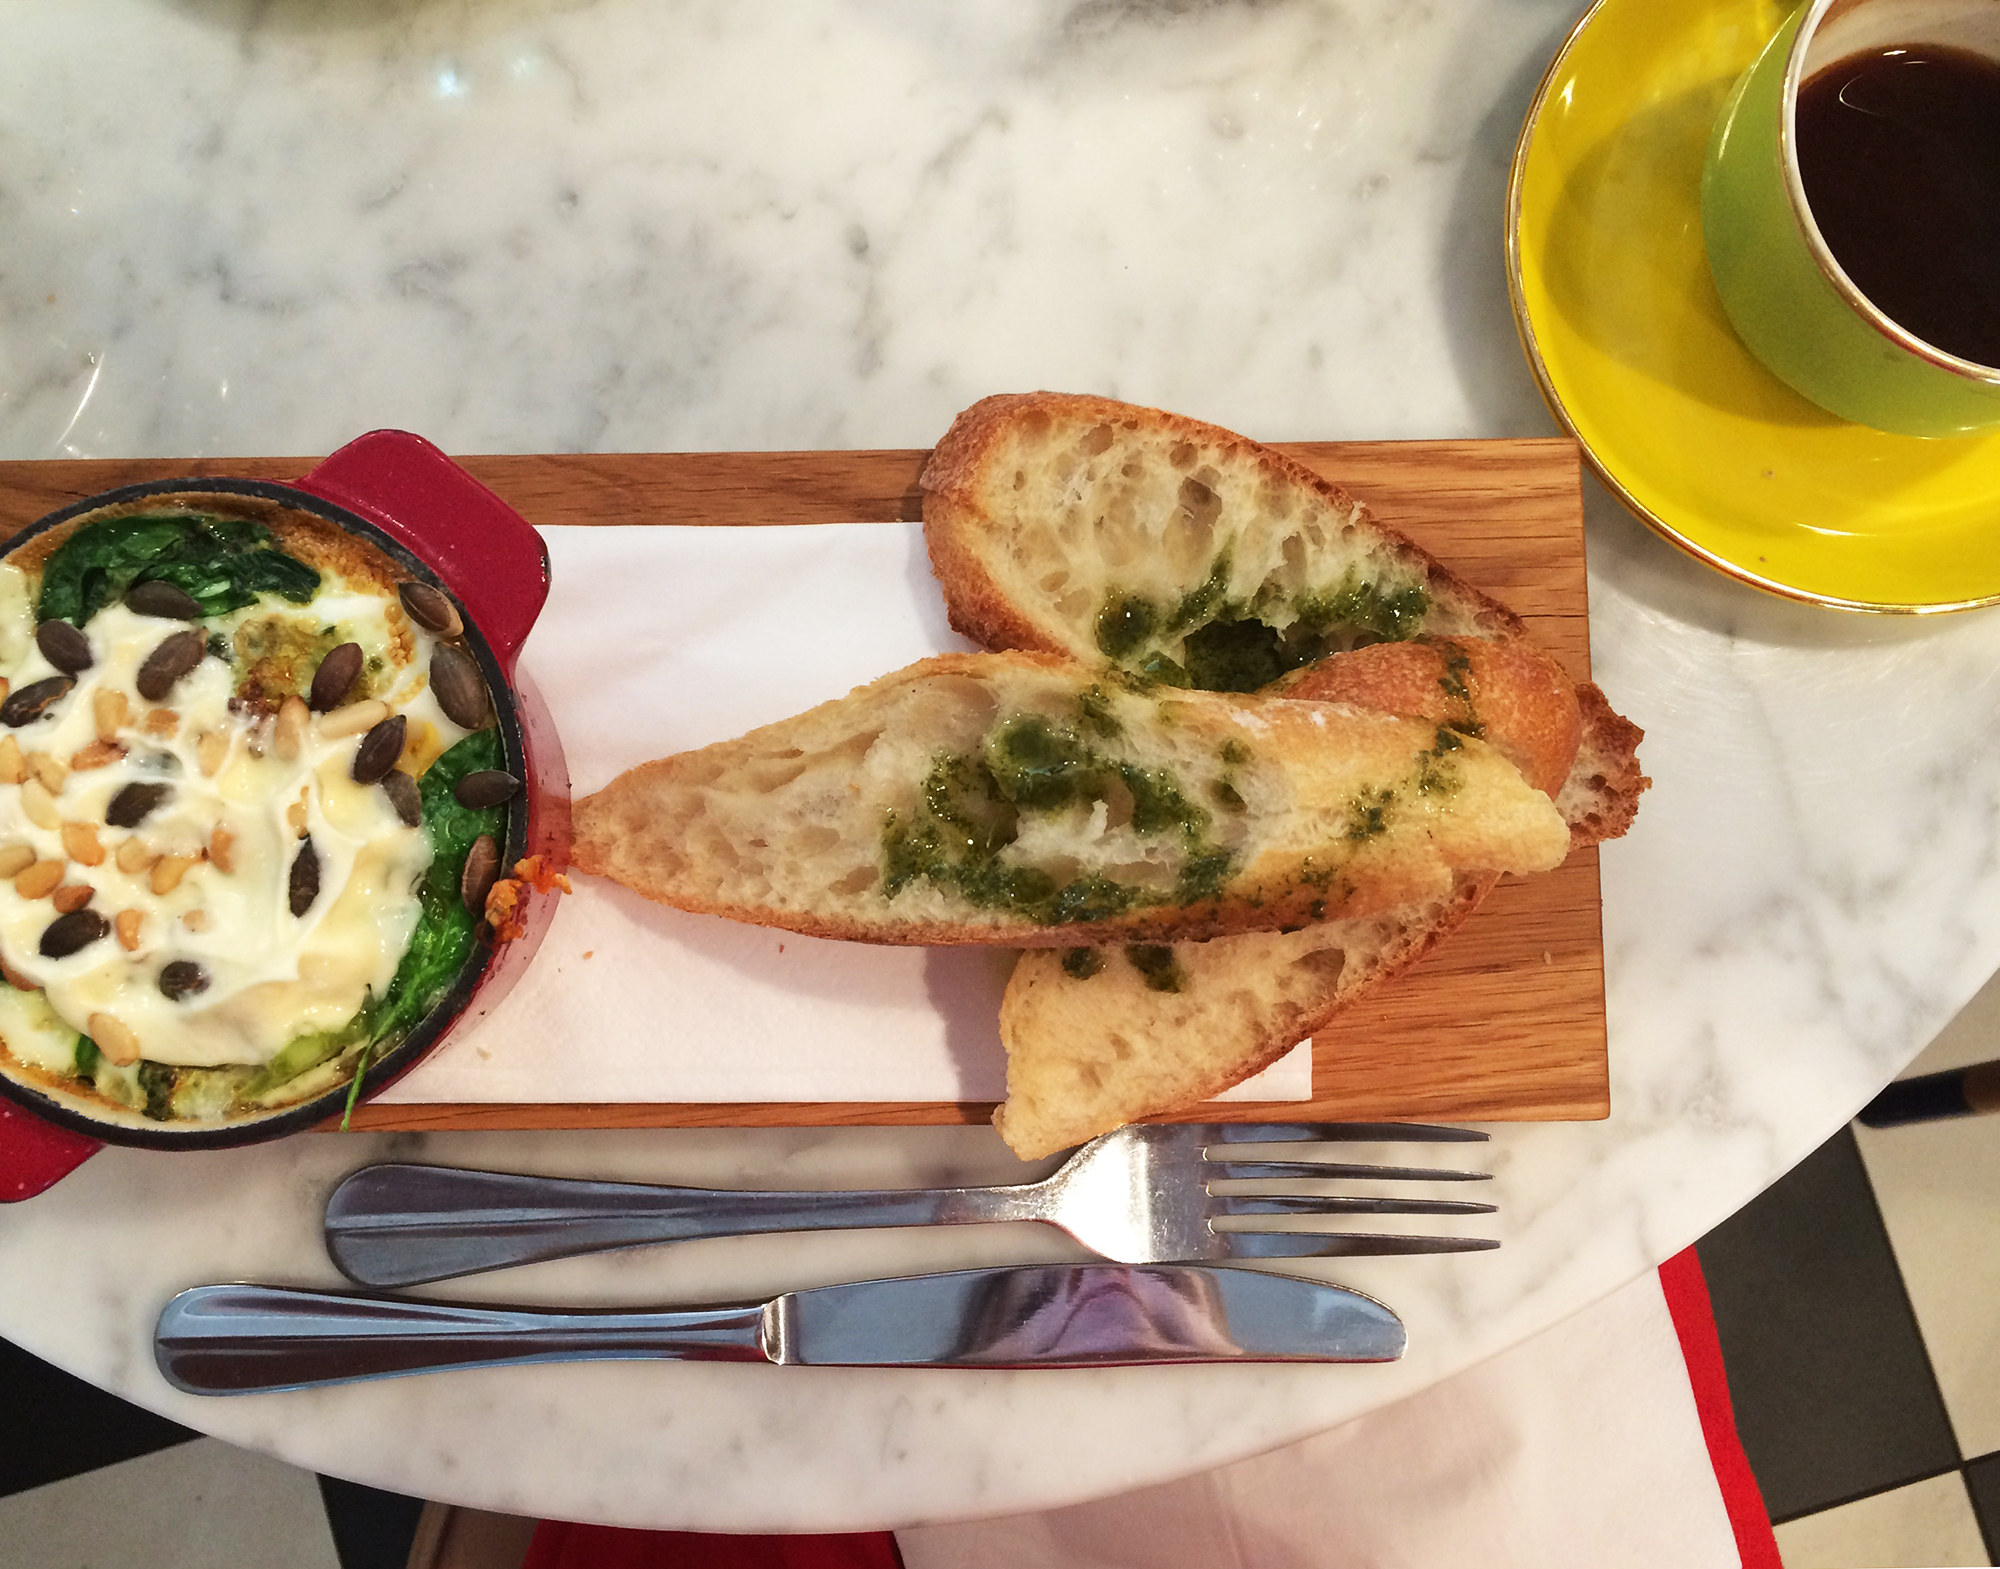 Hardware Societe, Australian Breakfast arrives in Montmartre